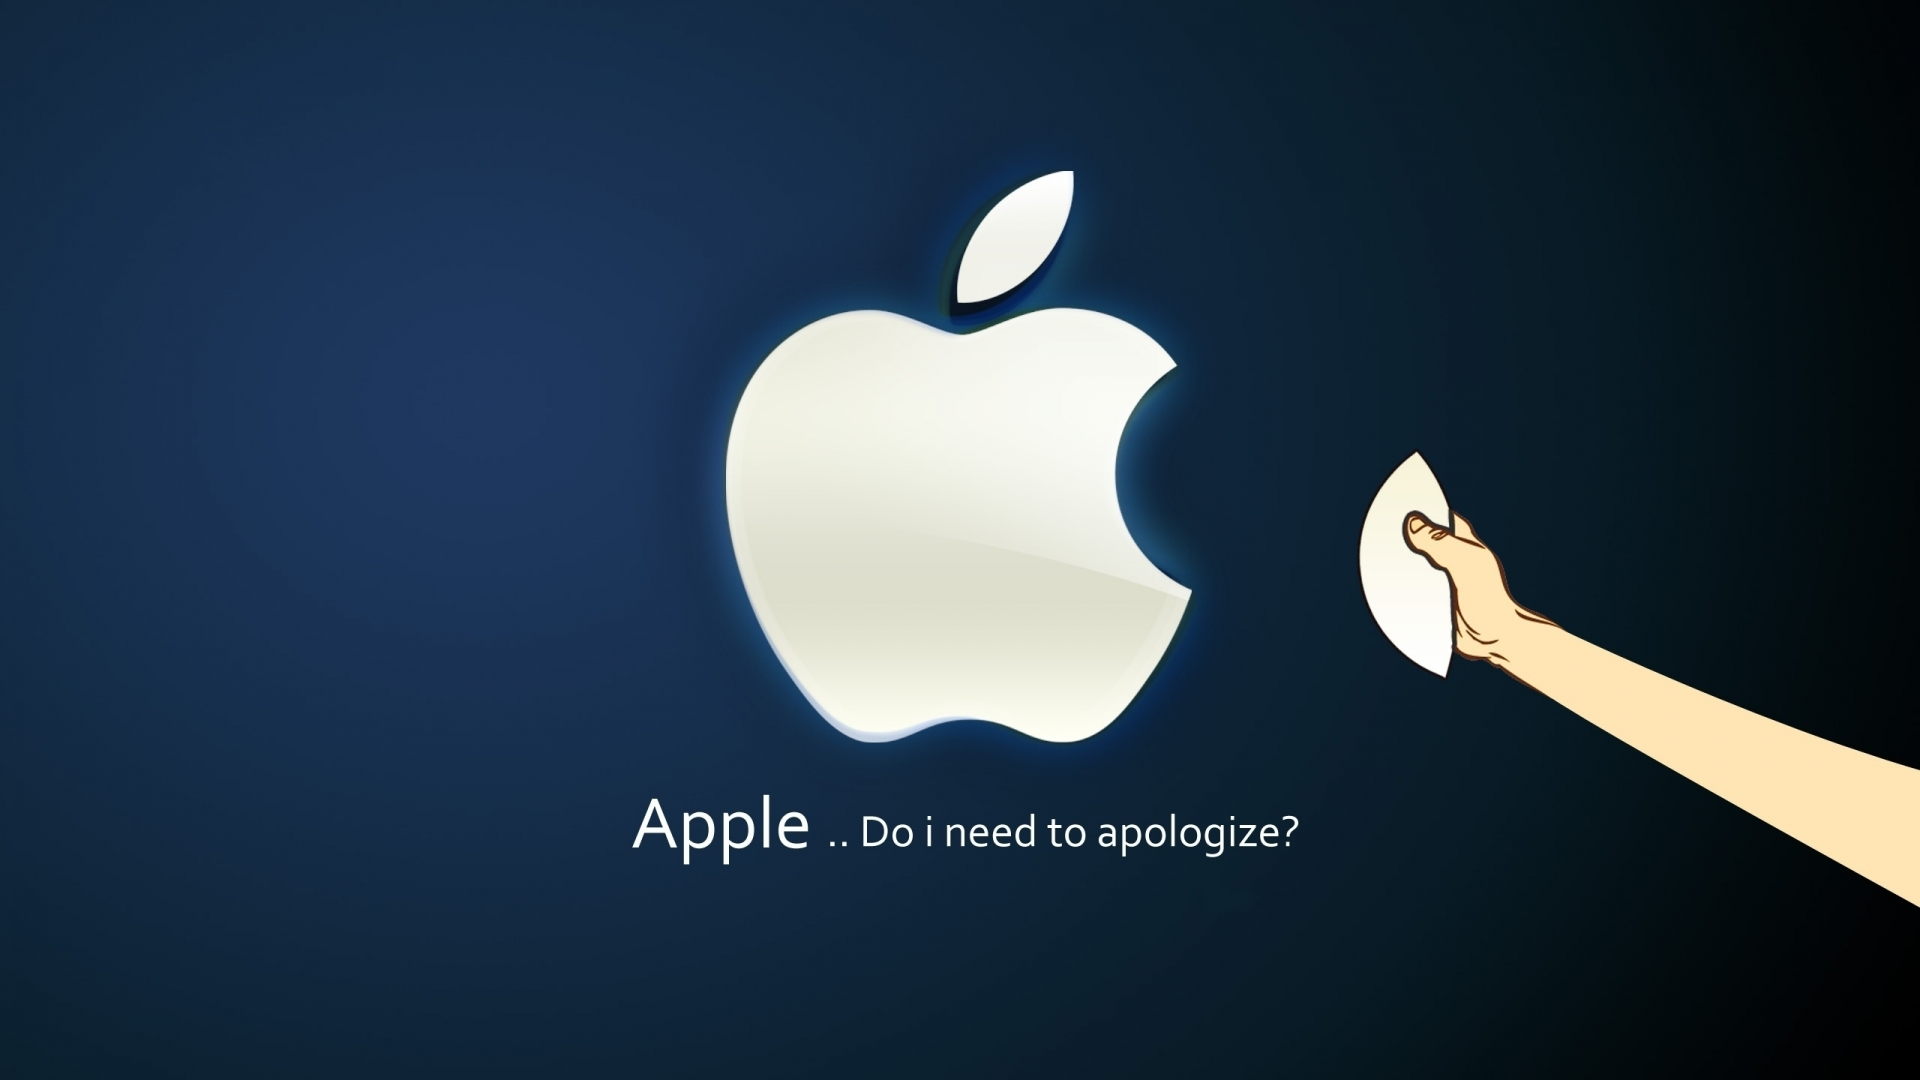 http://3.bp.blogspot.com/-0C5zvV6ZQAg/UEy55WgXZkI/AAAAAAAAI_s/mG8pCjko9U8/s0/apple-question-1920x1080-wallpaper.jpg